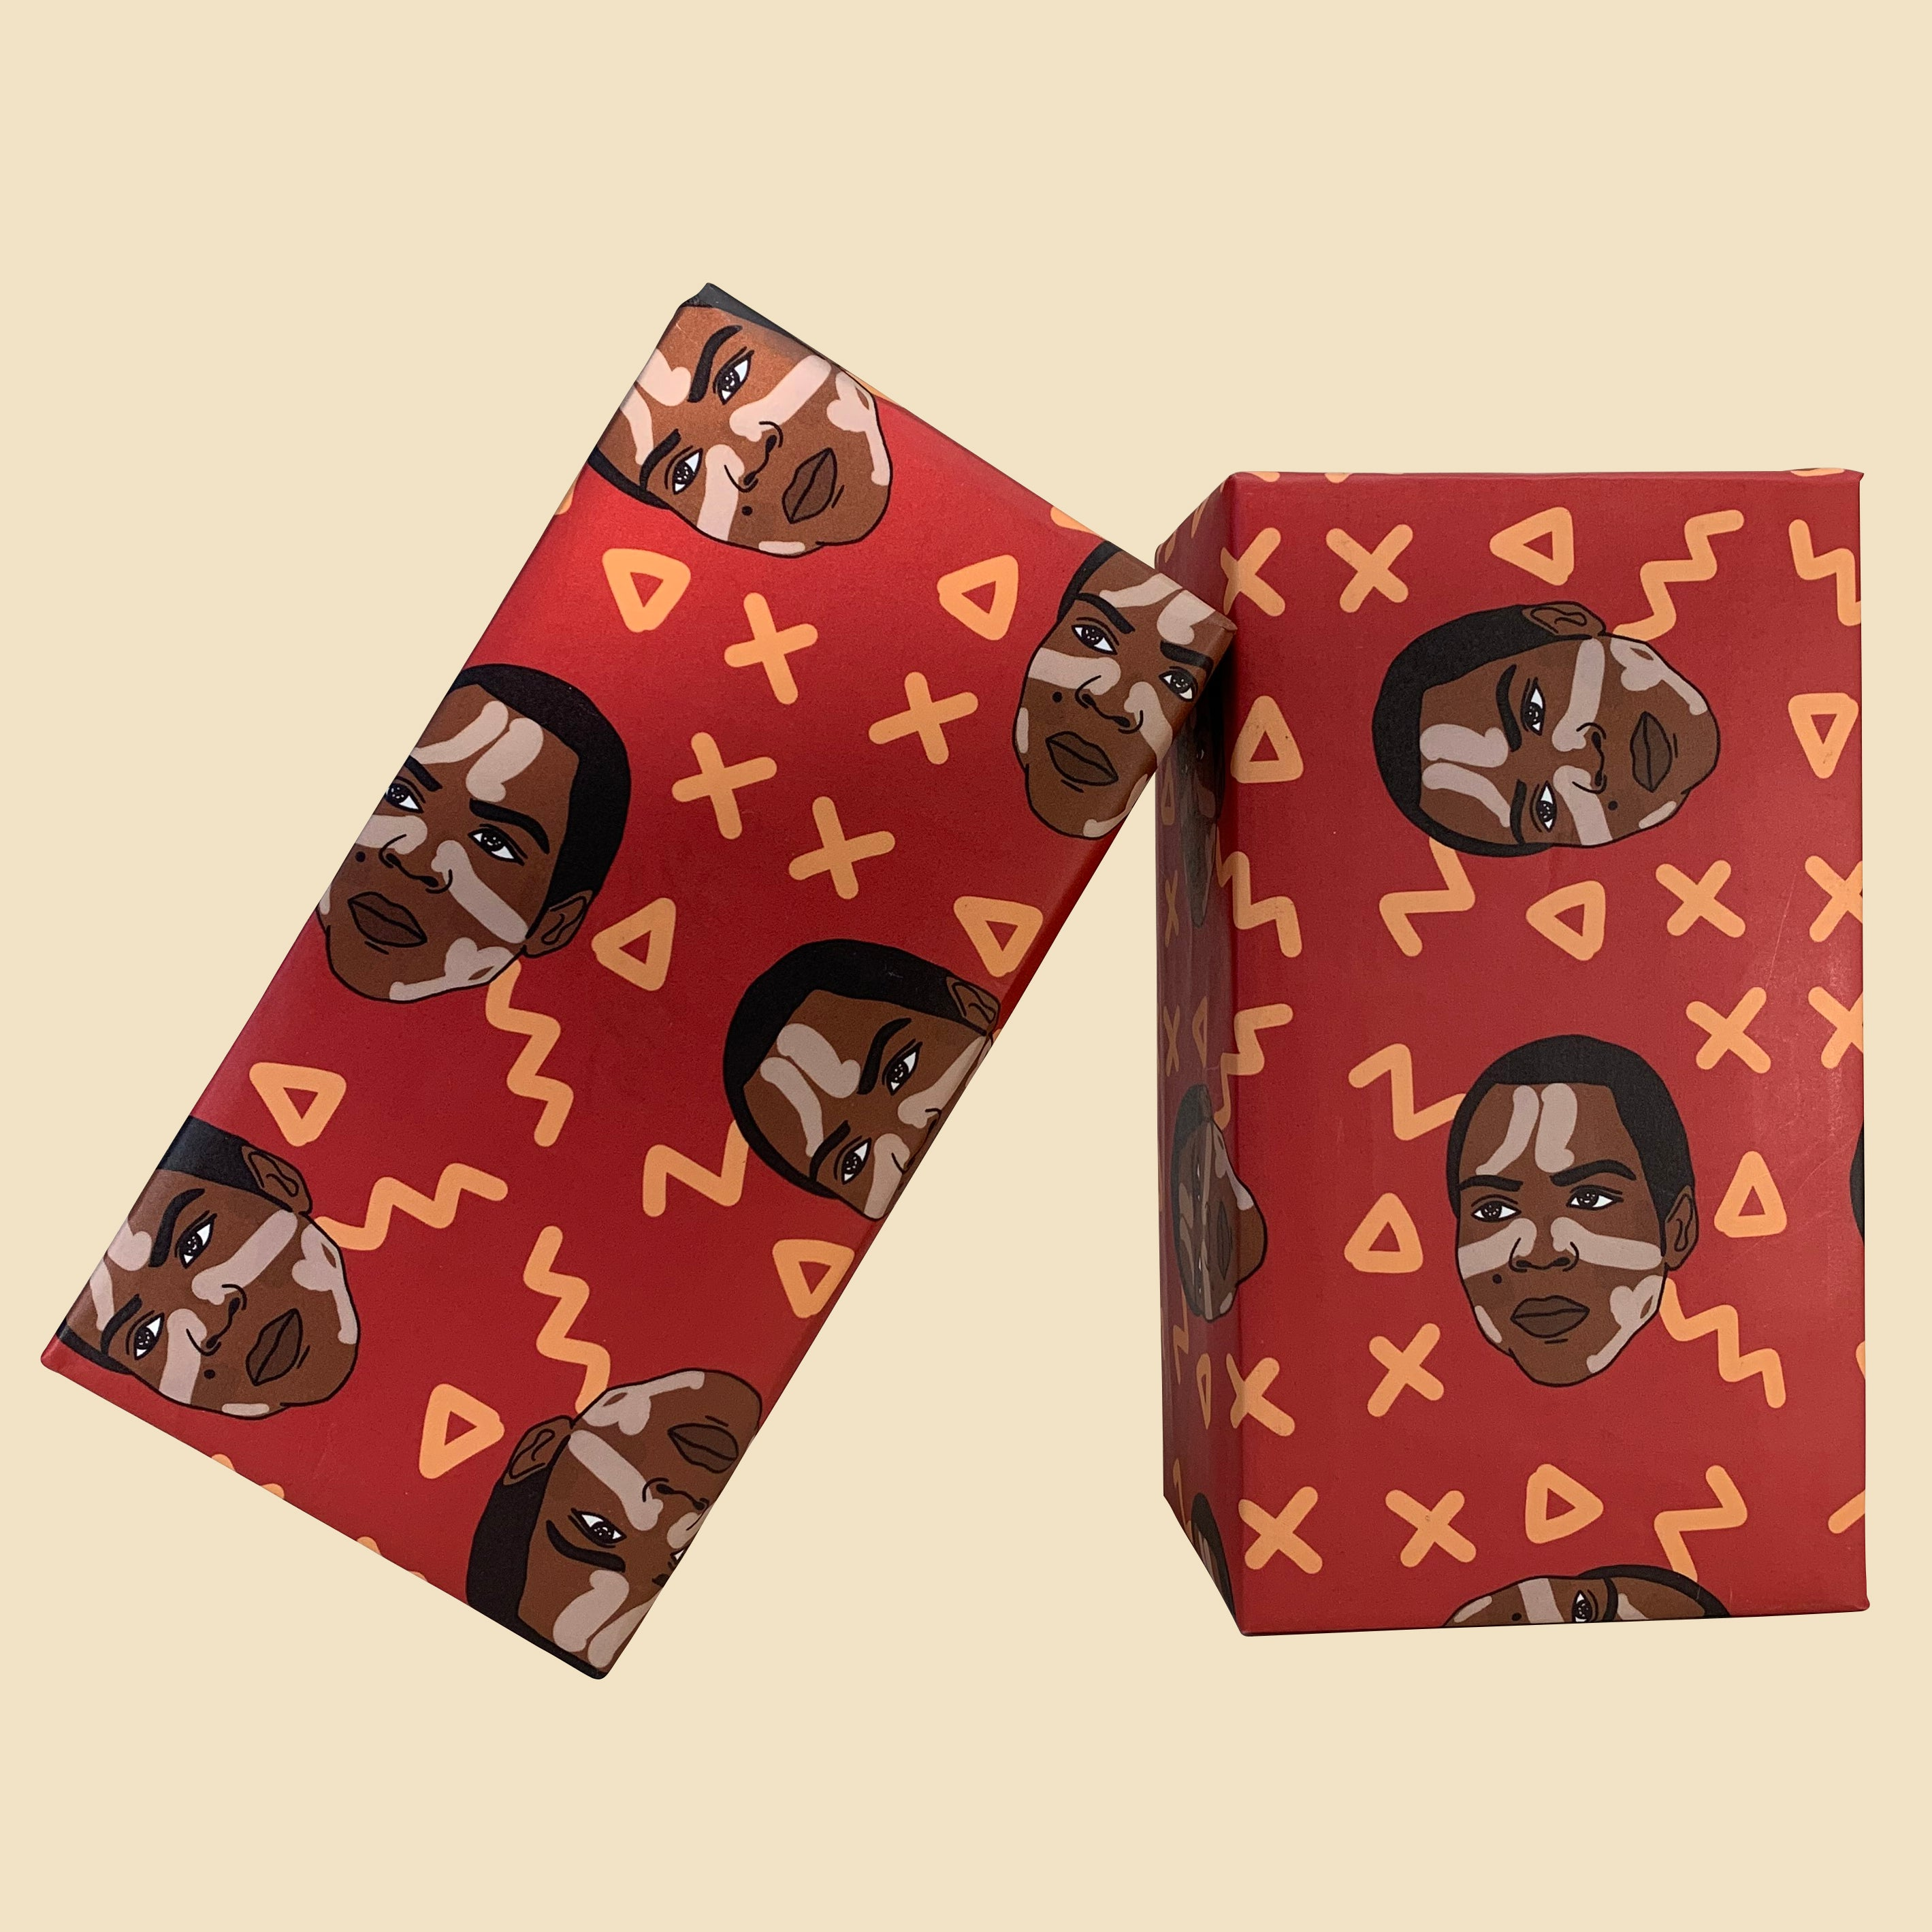 Burna Boy Wrapping Paper